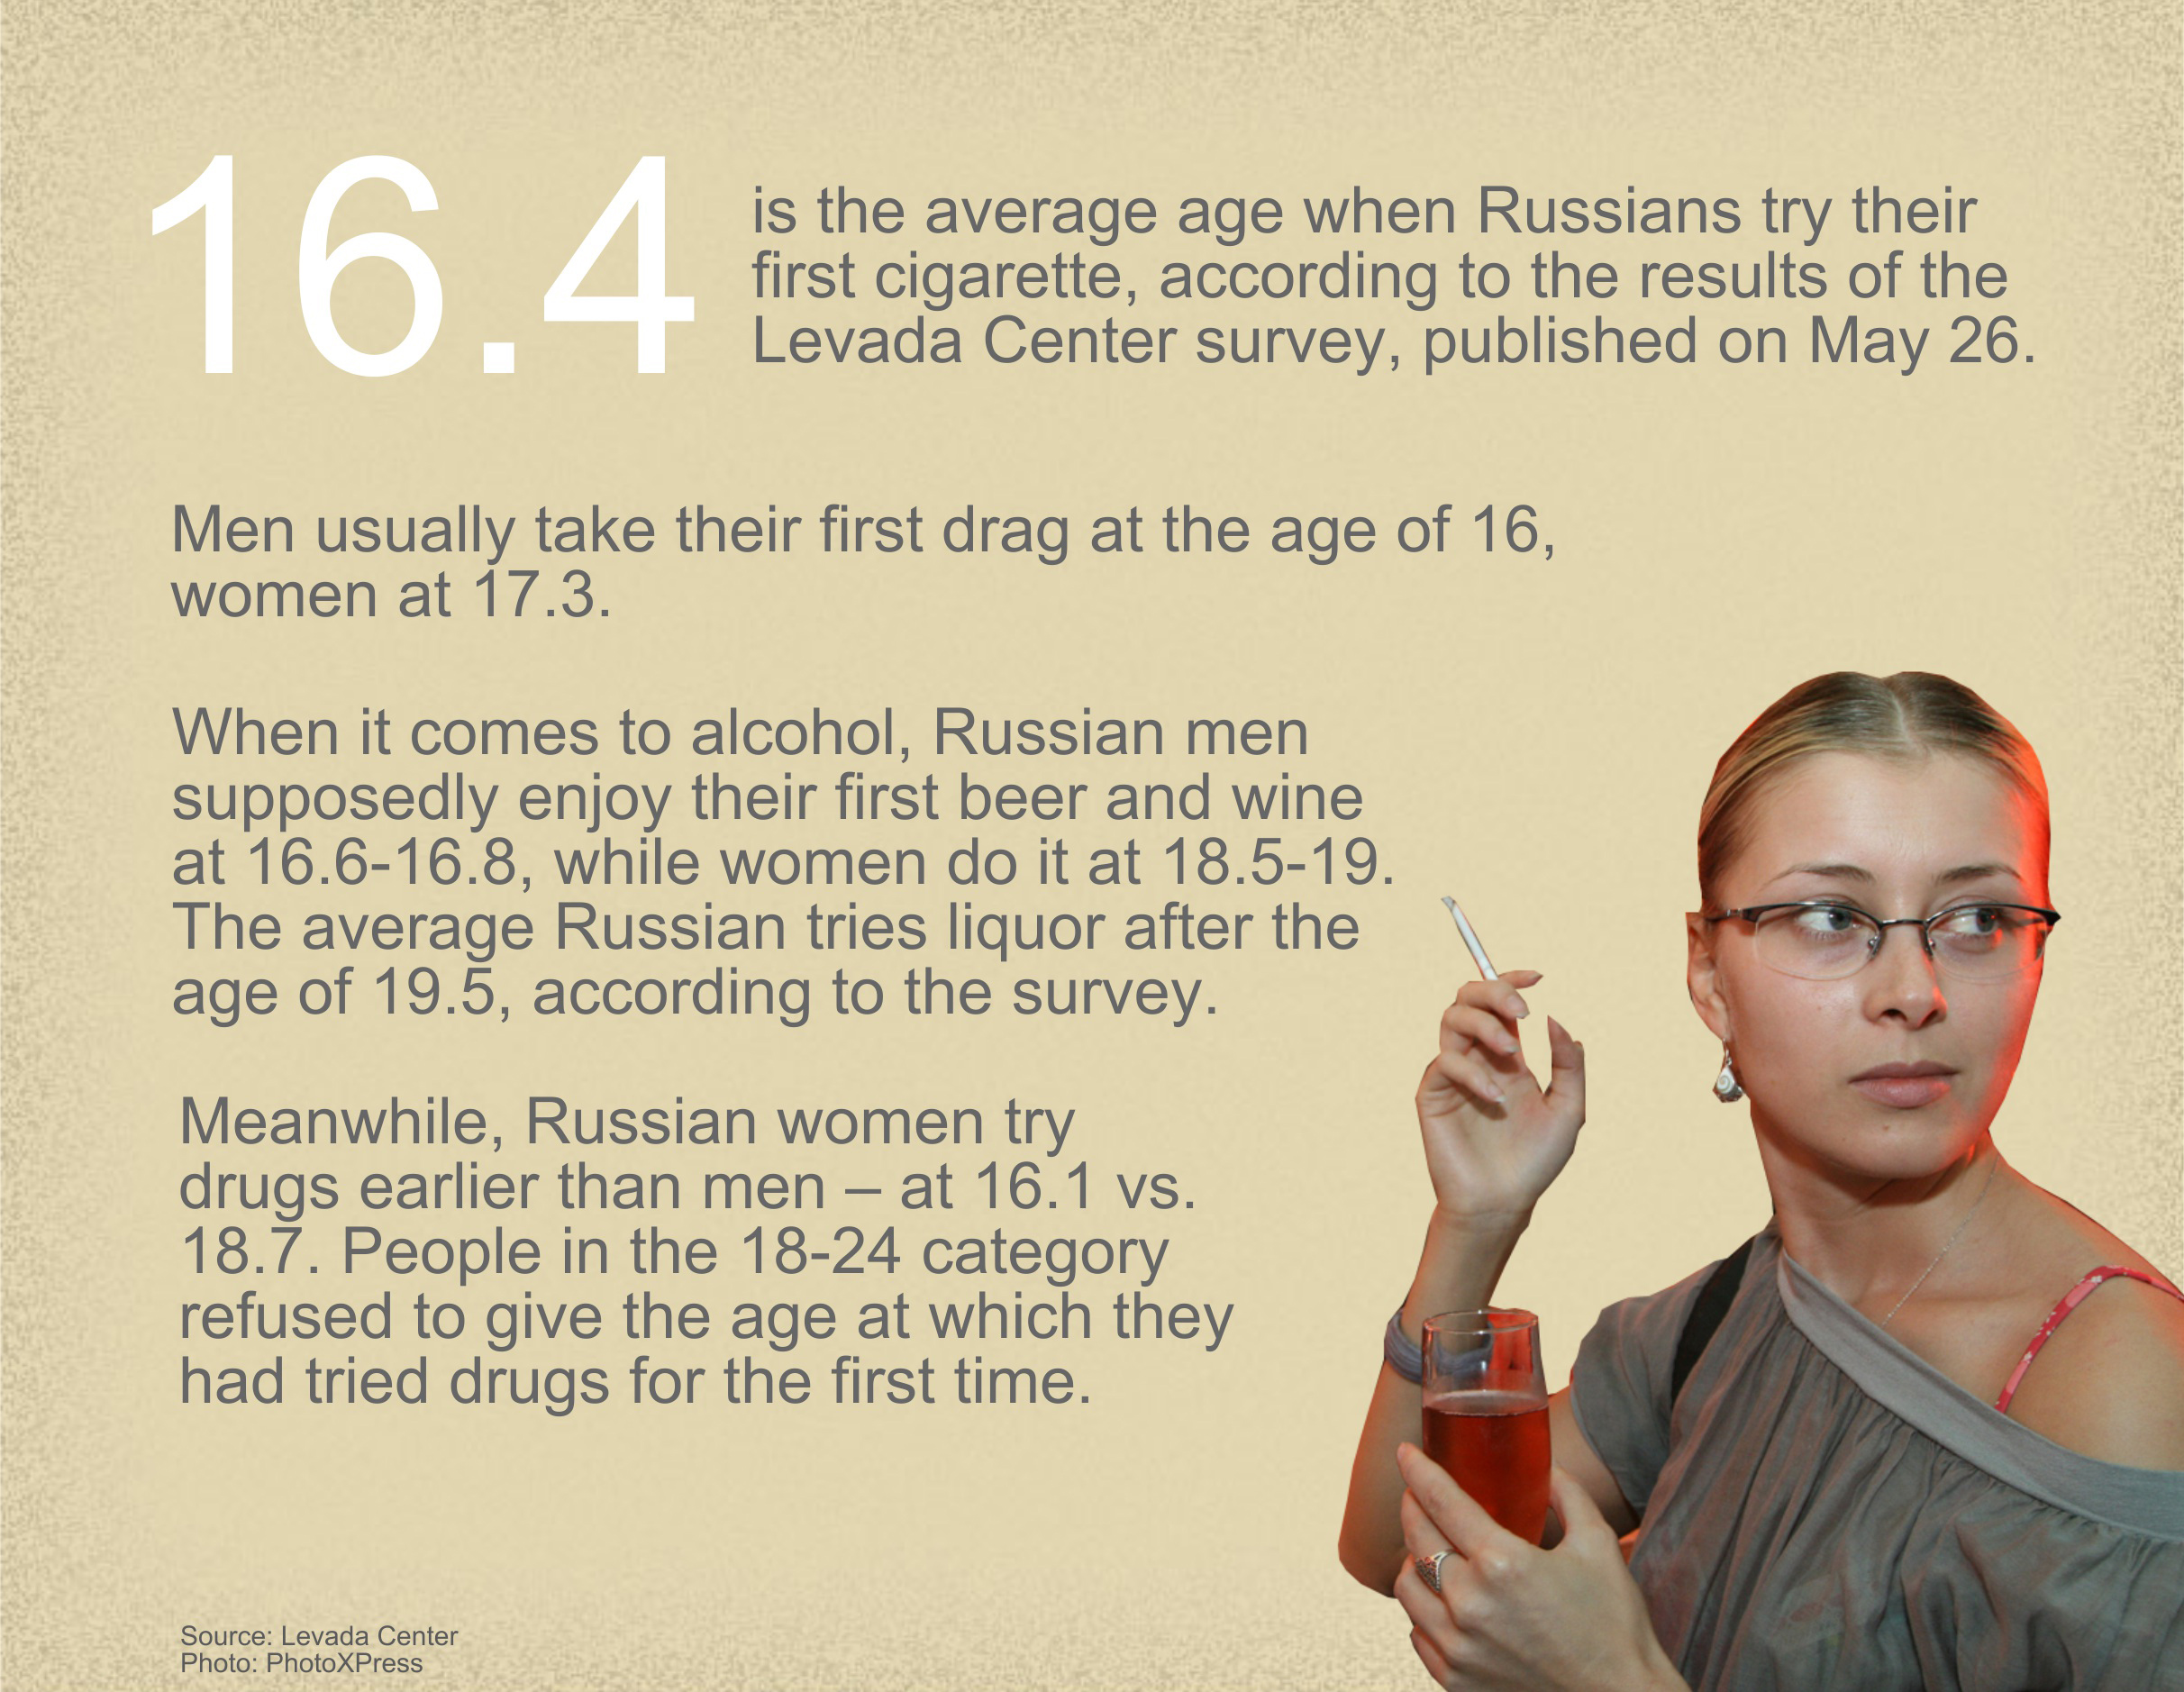 At what age do Russians try their first cigarettes and alcohol?